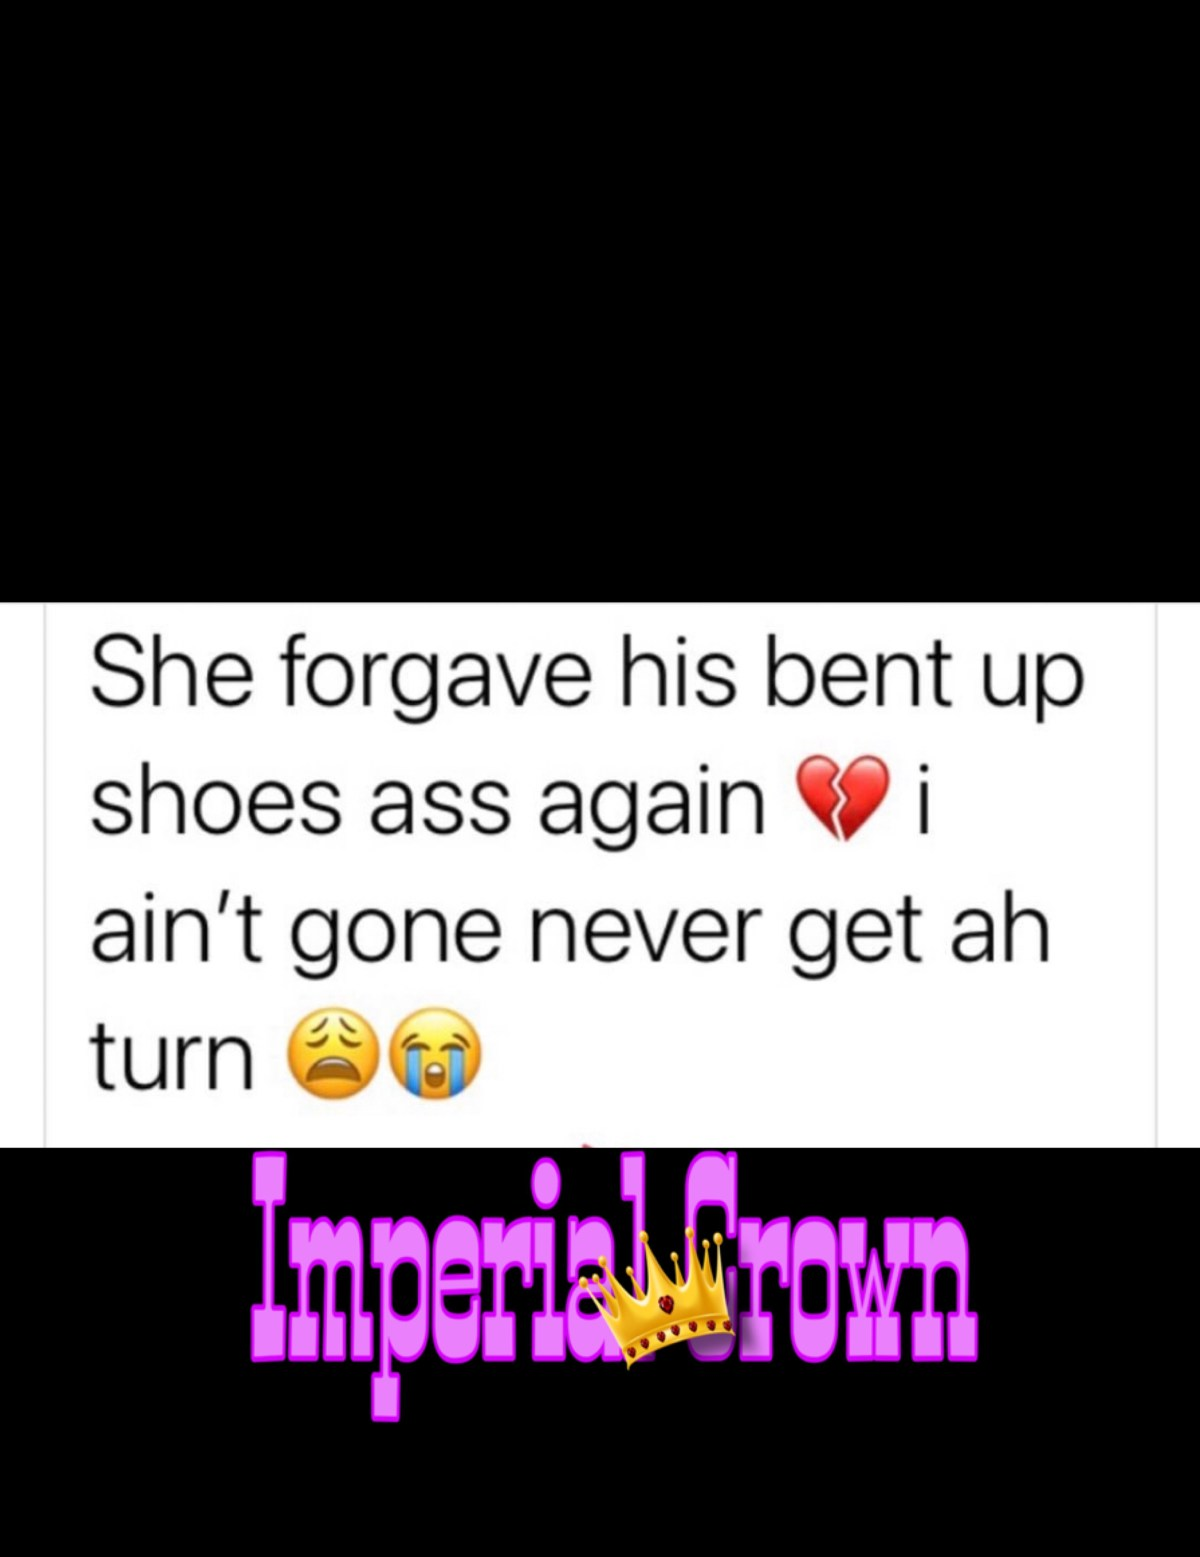 She forgave his bent up shoes ass again I ain't gone never get ah turn